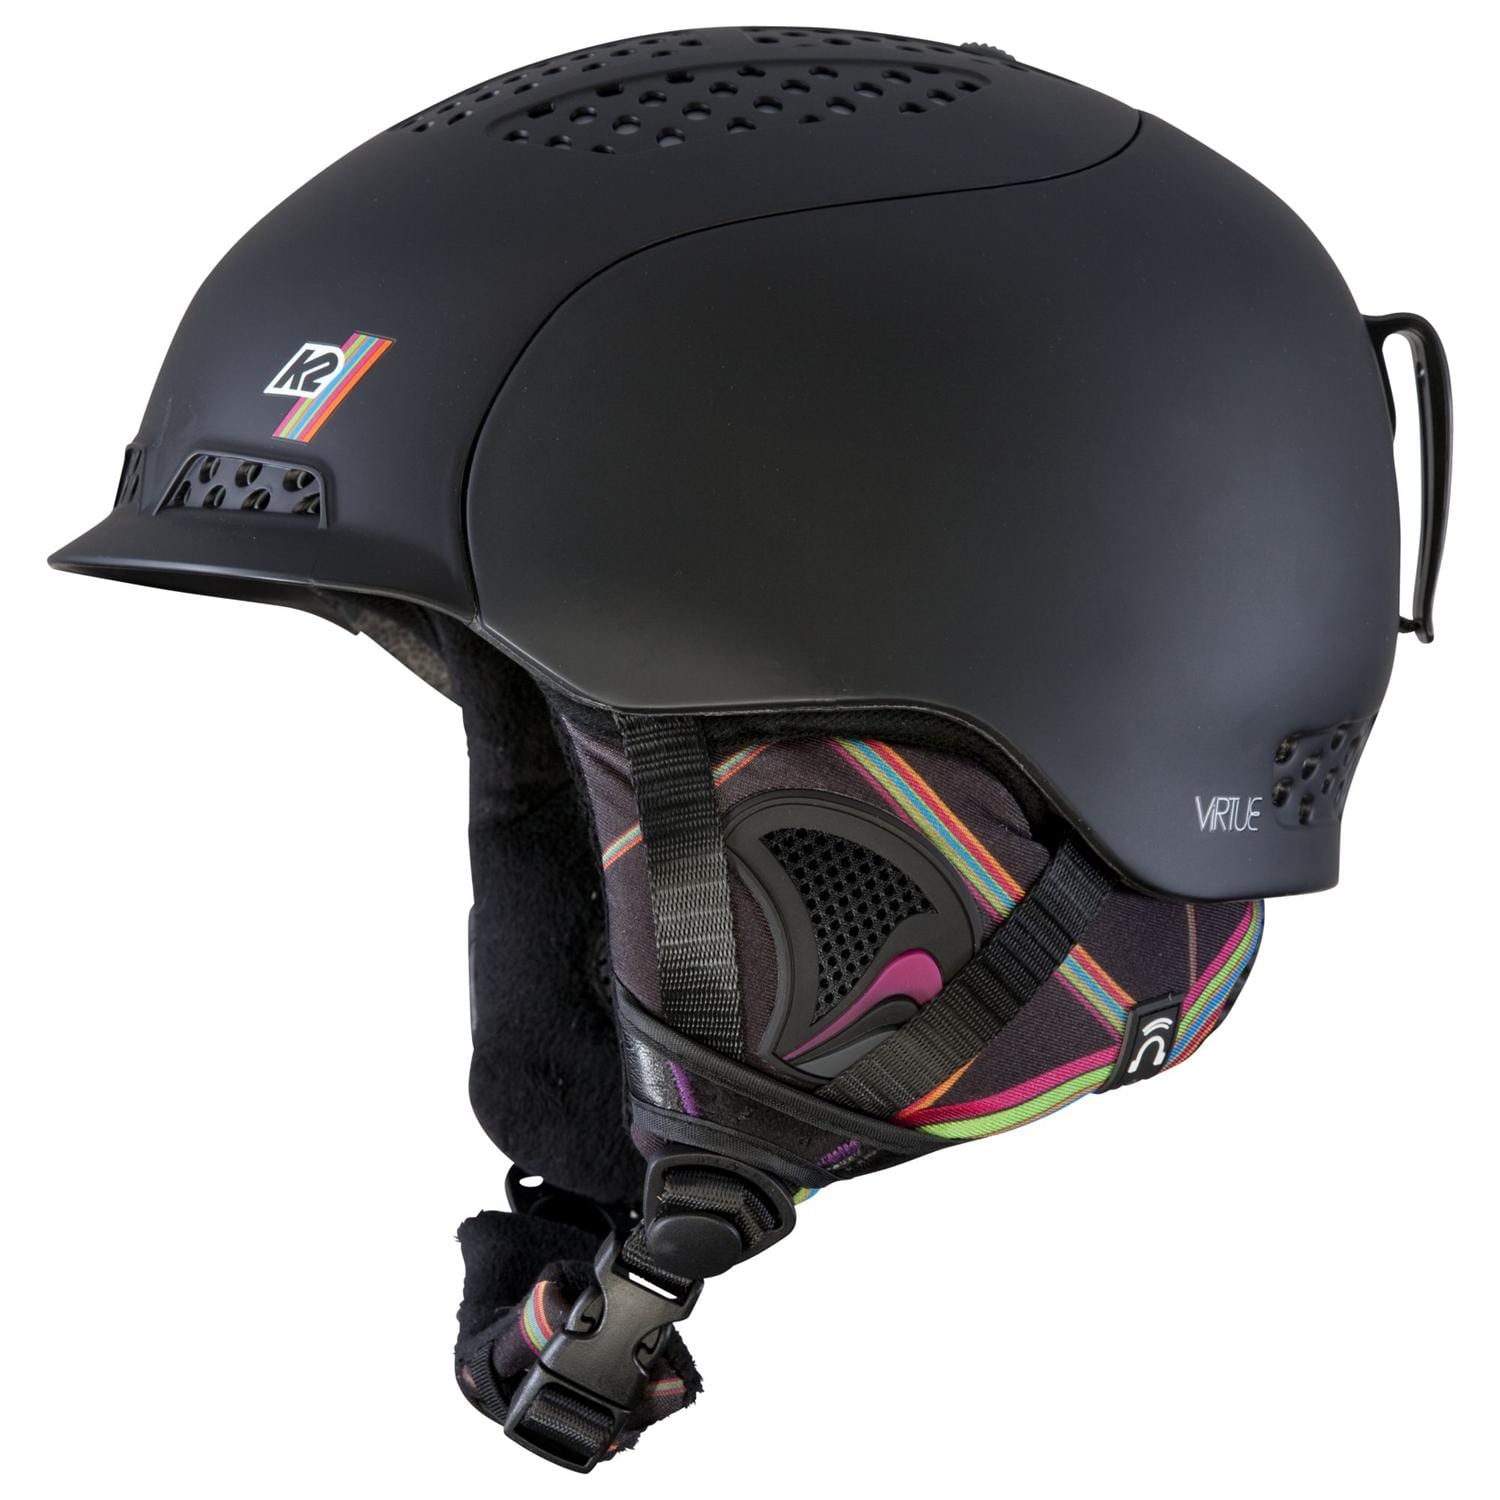 K2 Virtue Audio Ski Helmet